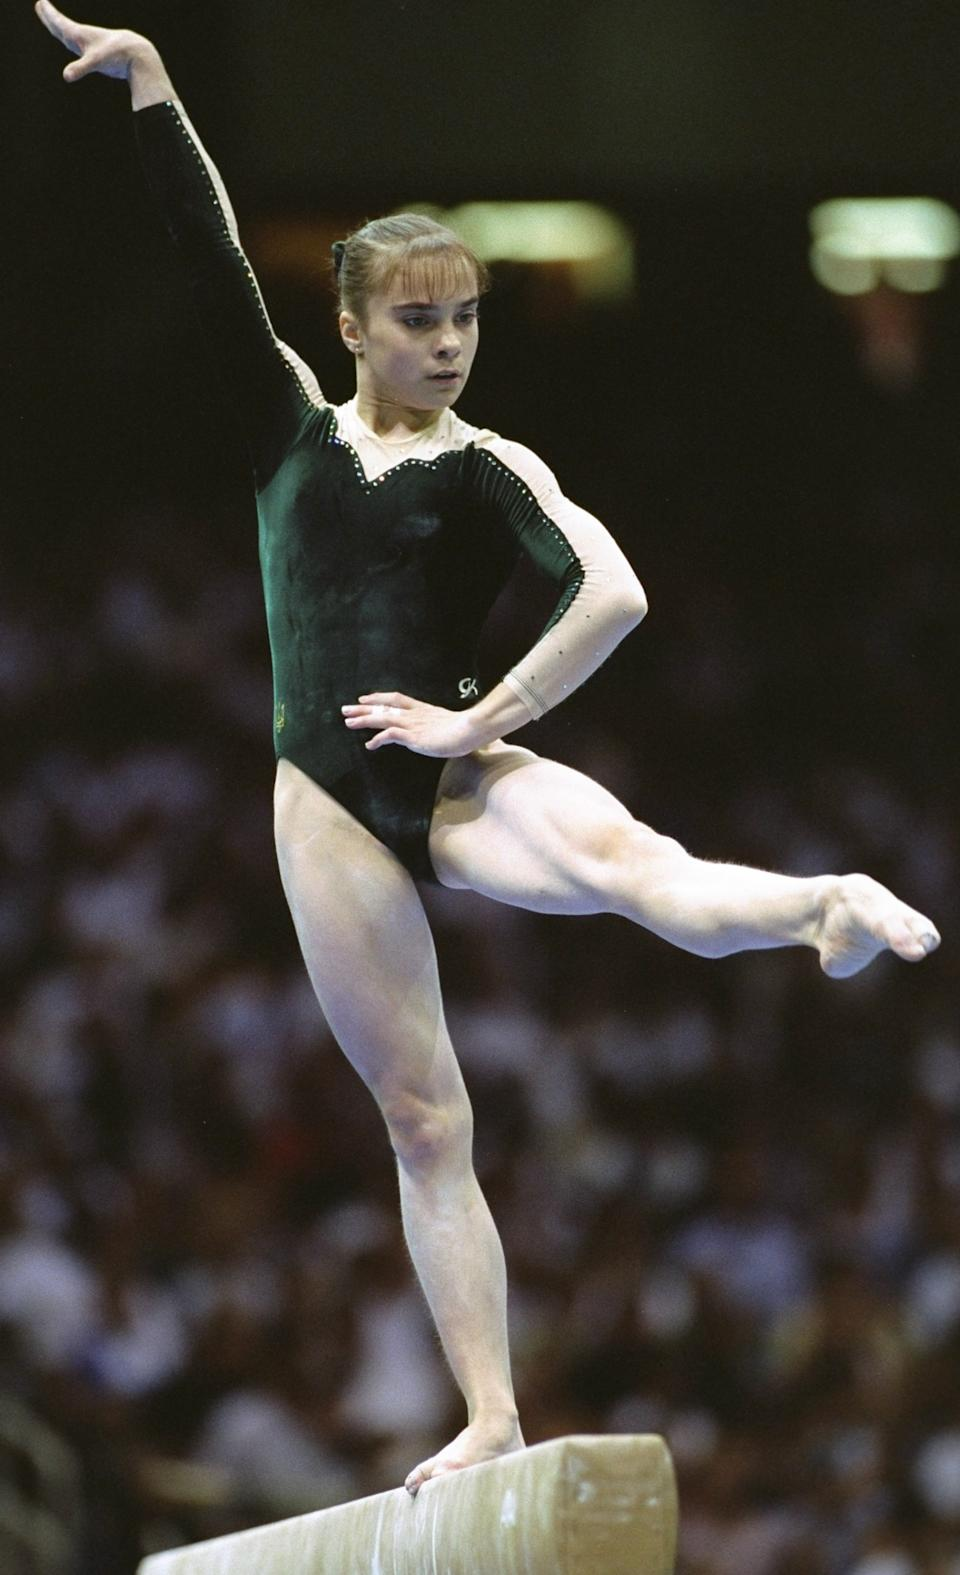 25 Jul 1996: Lilia Podkopayeva of the Ukraine wins gold for the womens individual all around gymnastics at the Georgia Dome at the 1996 Centennial Olympic Games in Atlanta Georgia.